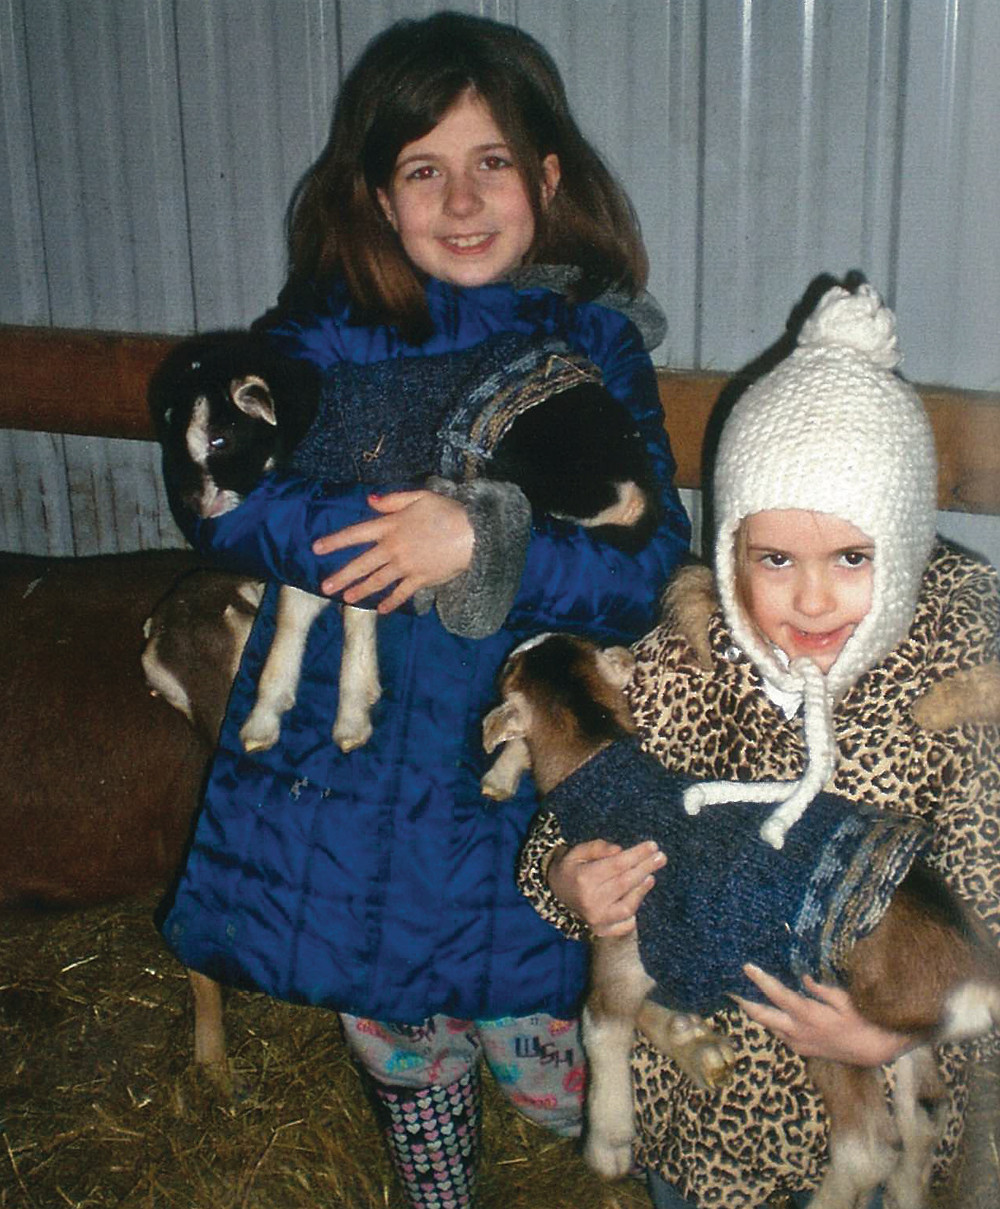 Rachel and Gracie with Their Babies, 2008